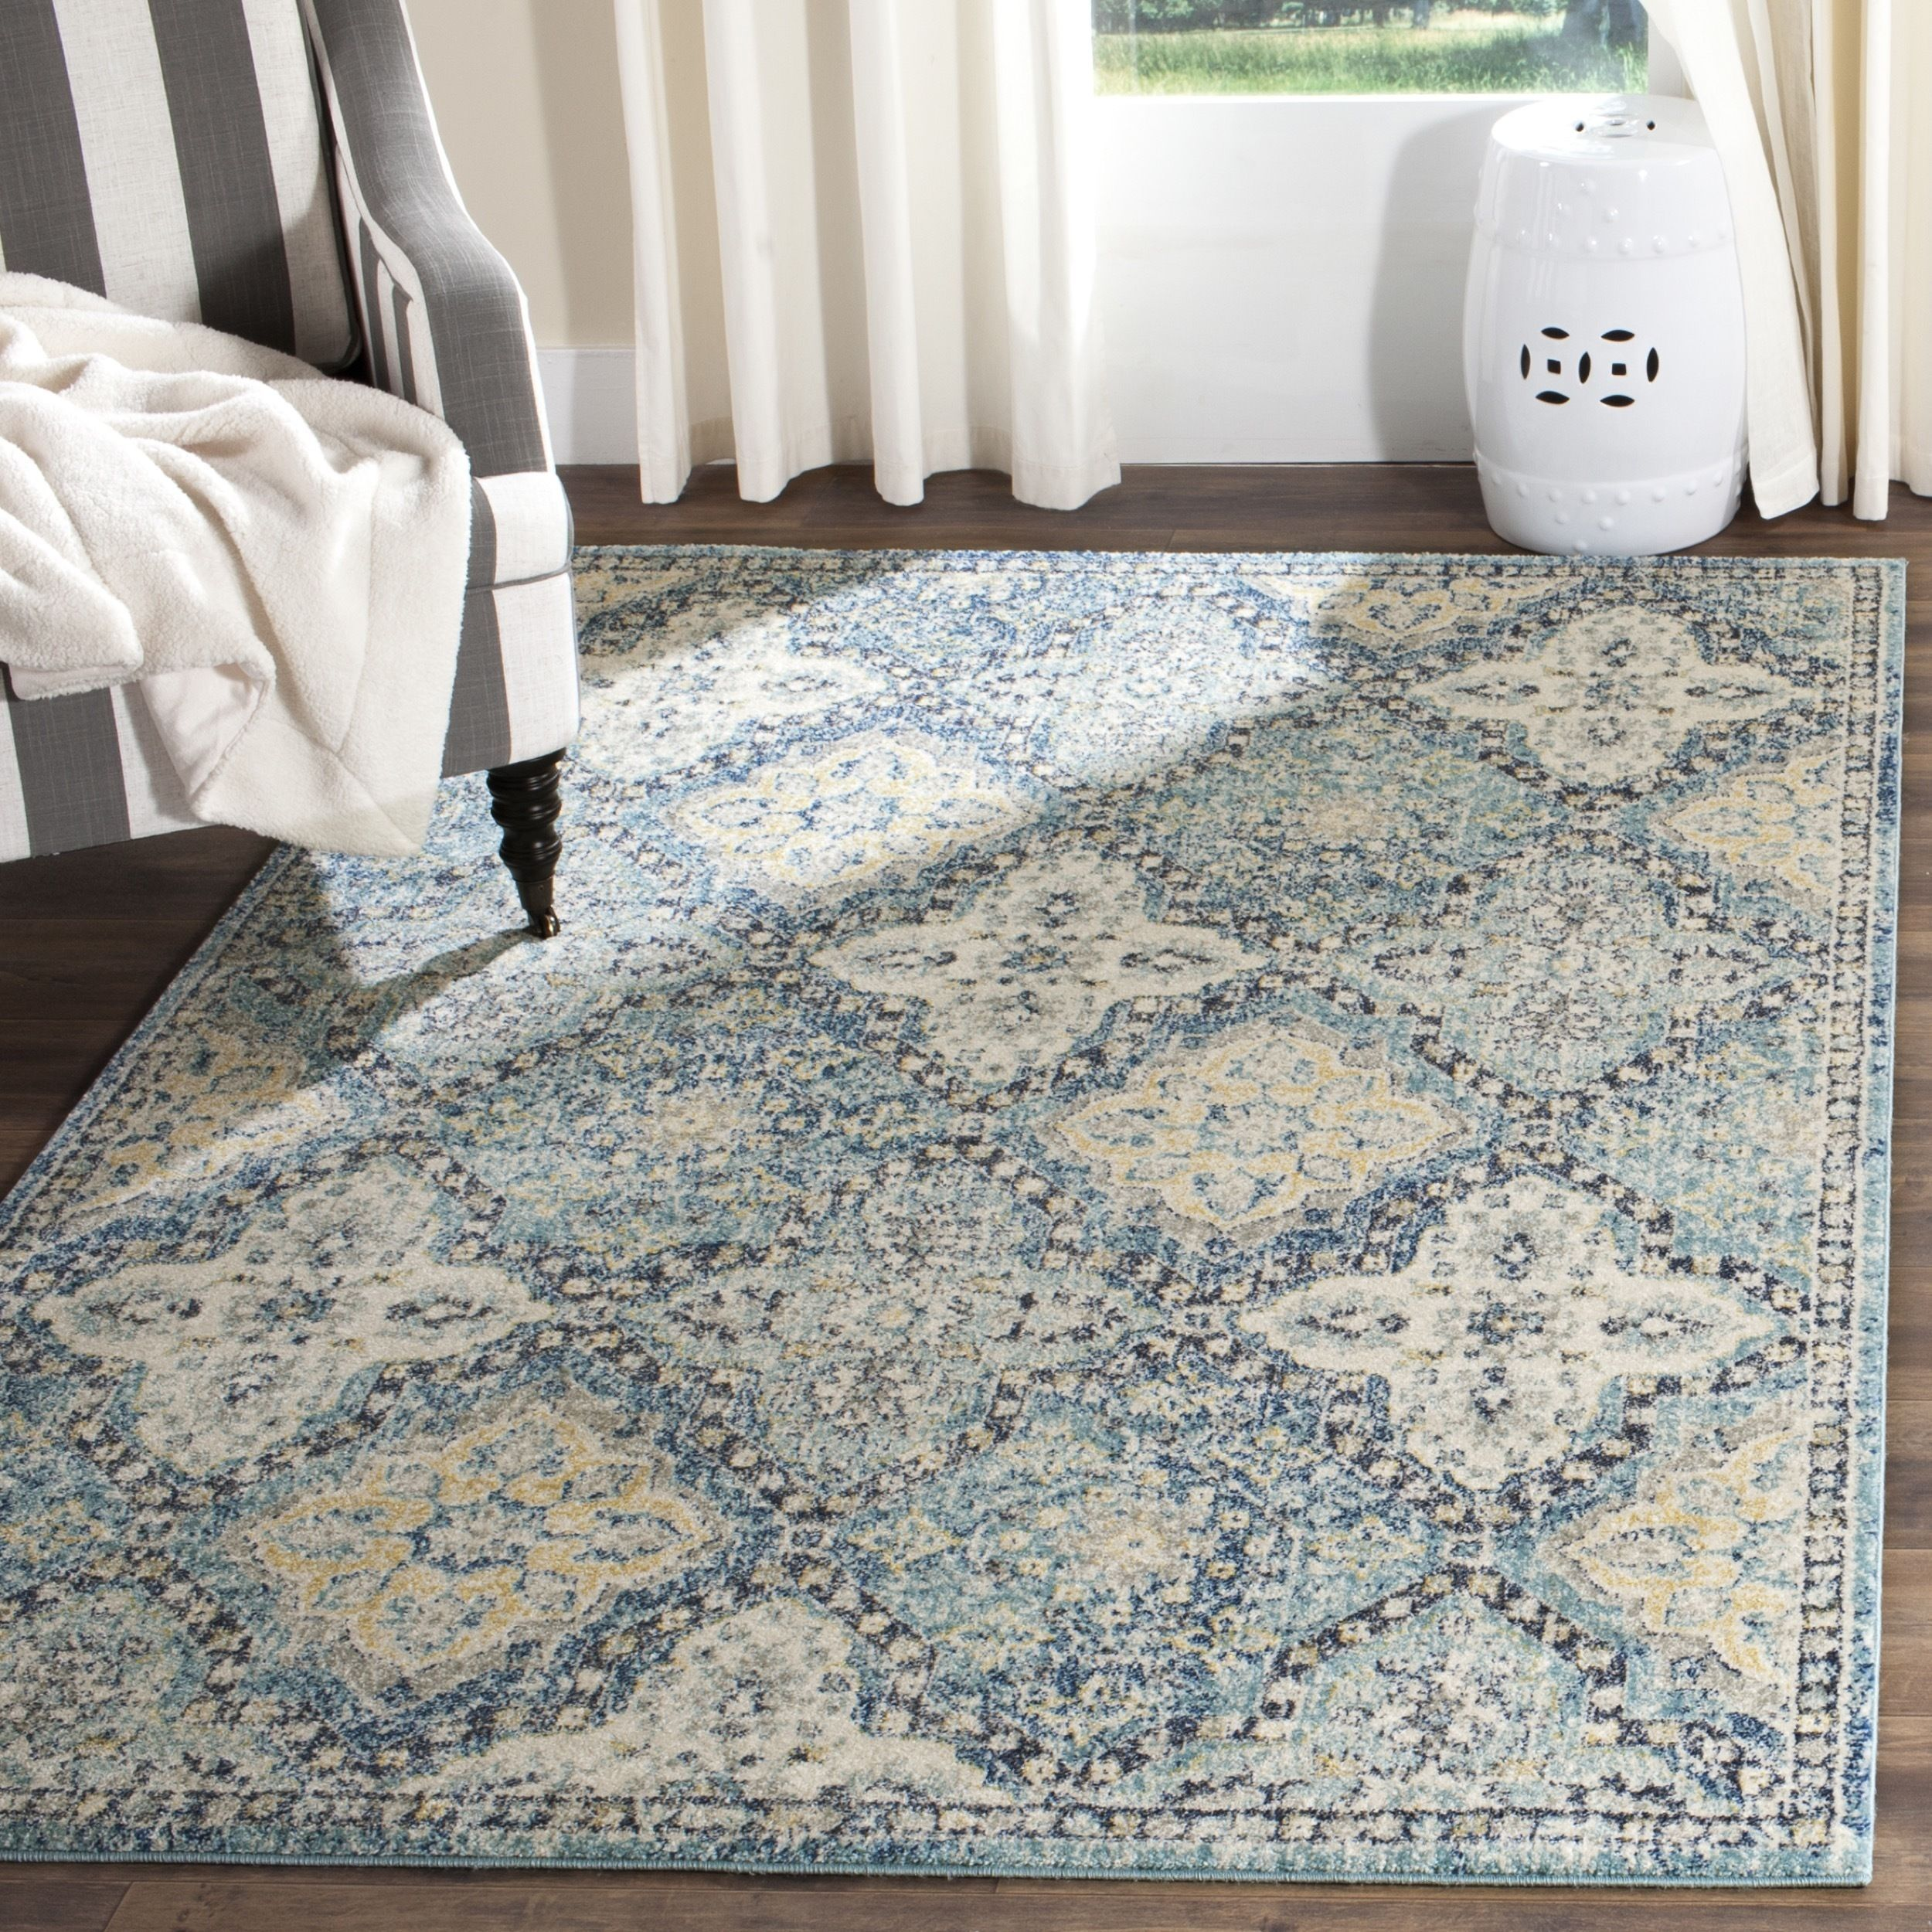 Safavieh Evoke Light Blue Ivory Rug 10 X 14 Evk274c 10 Size 10 X 14 Polypropylene Trellis Distressed Rugs Cool Rugs Rugs